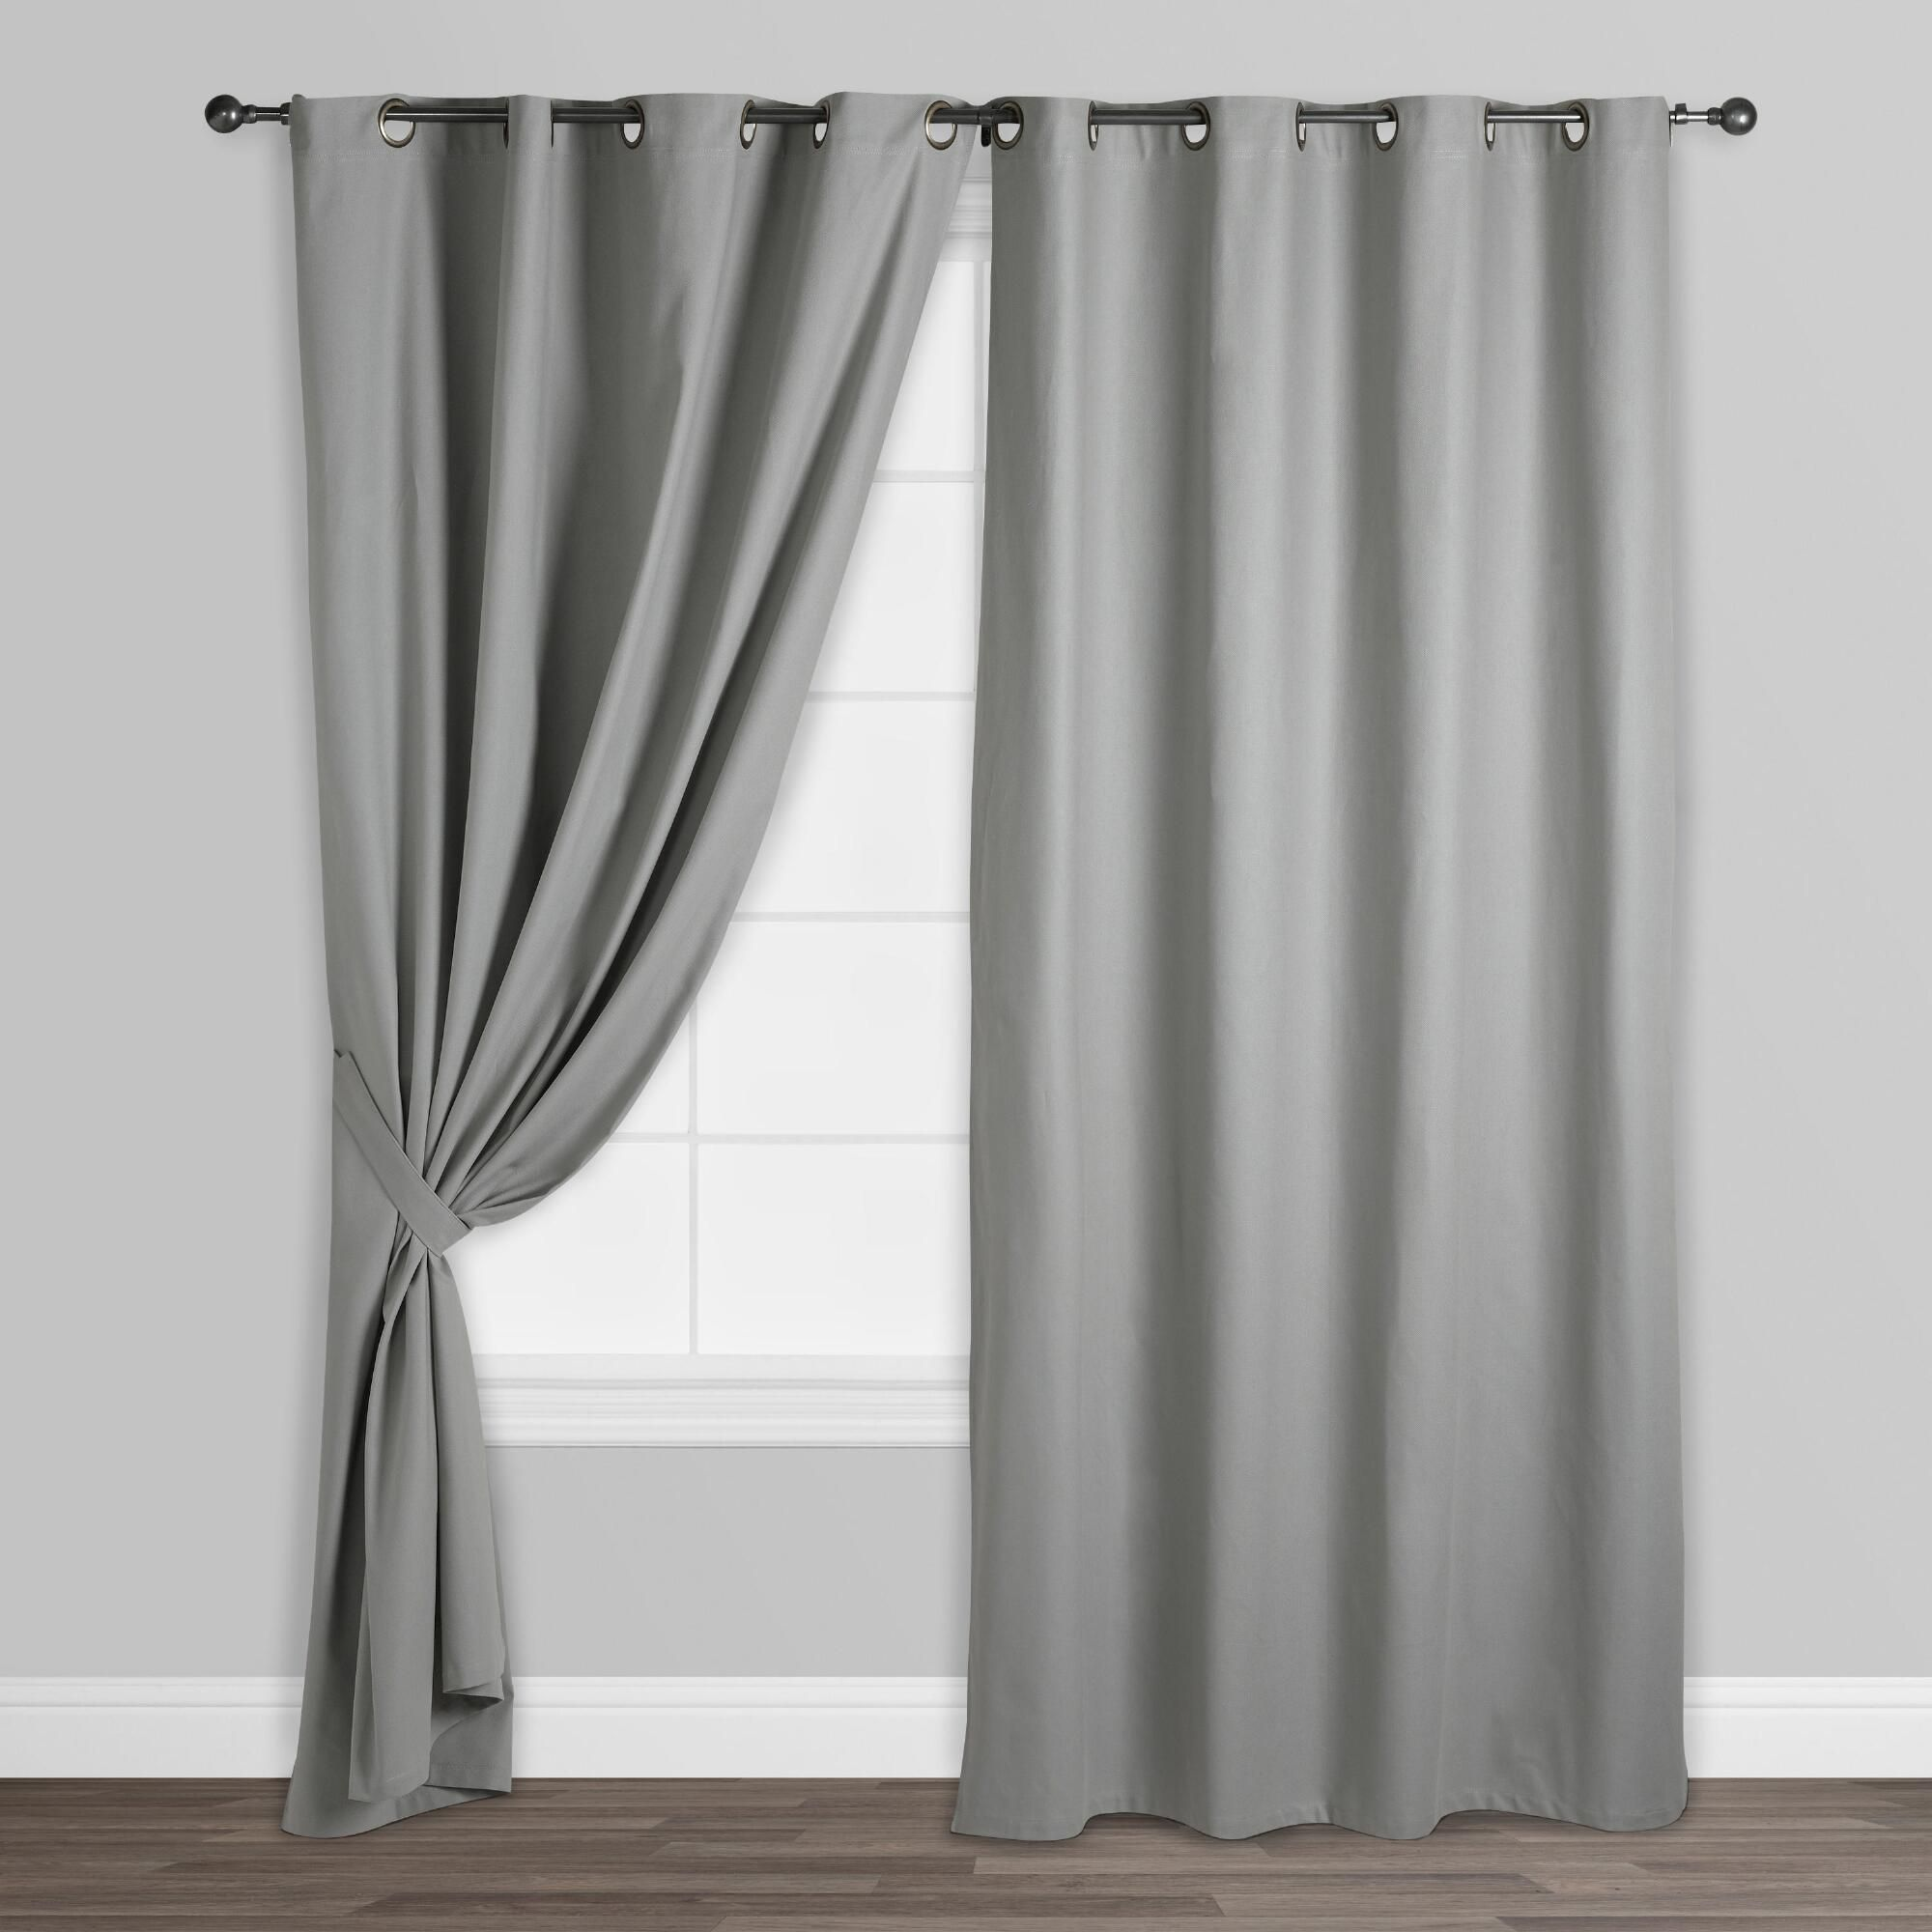 Our Slate Gray Parker Grommet Top Curtains Are Available In Three Lengths Suitable For A Wide Variety Of Window And Ceiling Heights With A Bronze Gromm Vorhange